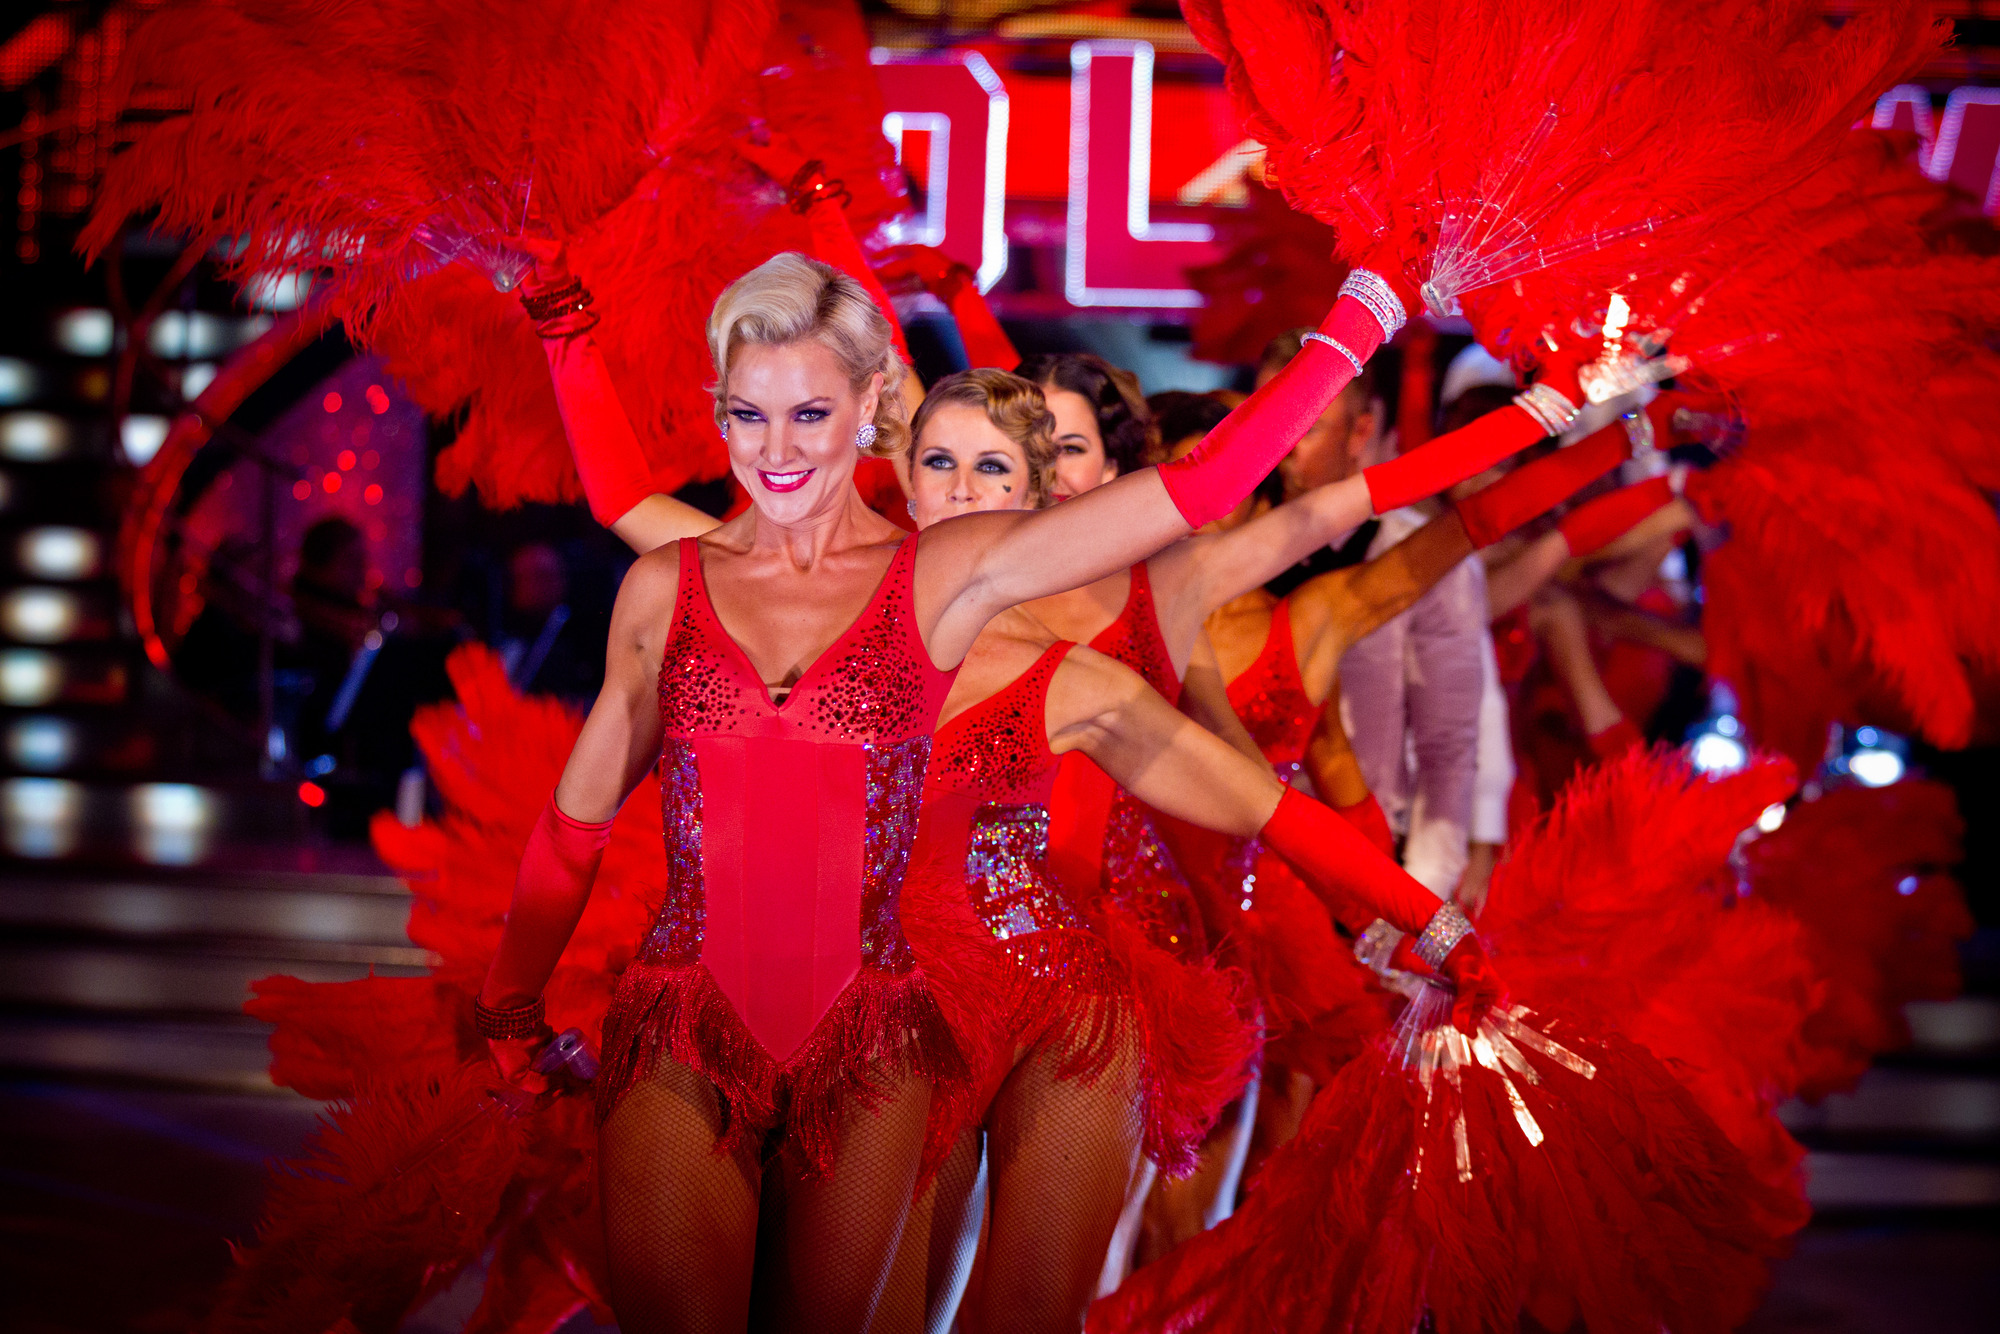 The Strictly Come Dancing professional dancers - (C) BBC - Photographer: Guy Levy